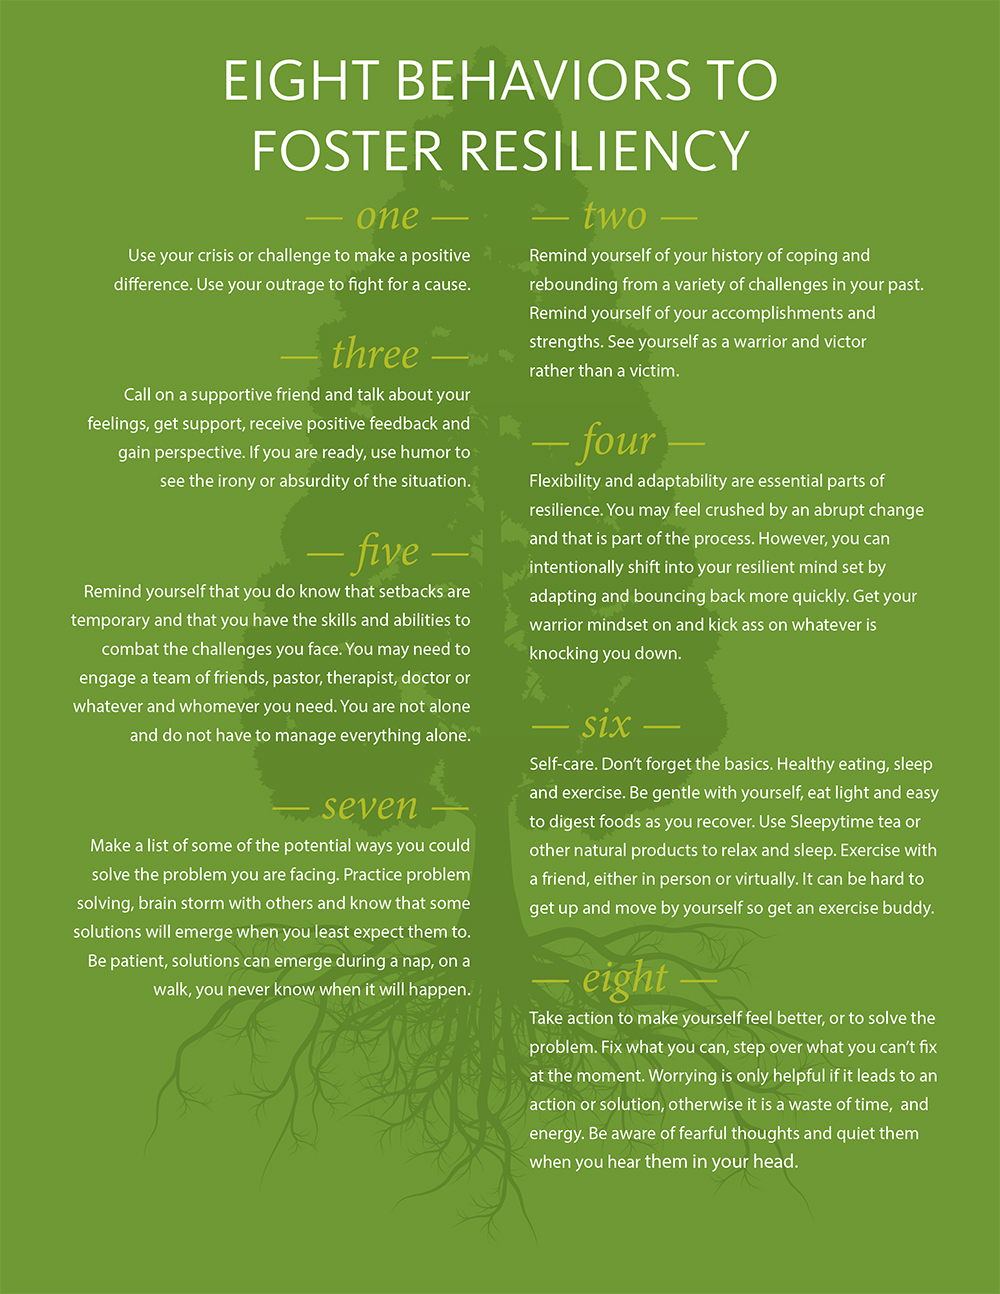 8 Behaviors to Foster Resilience